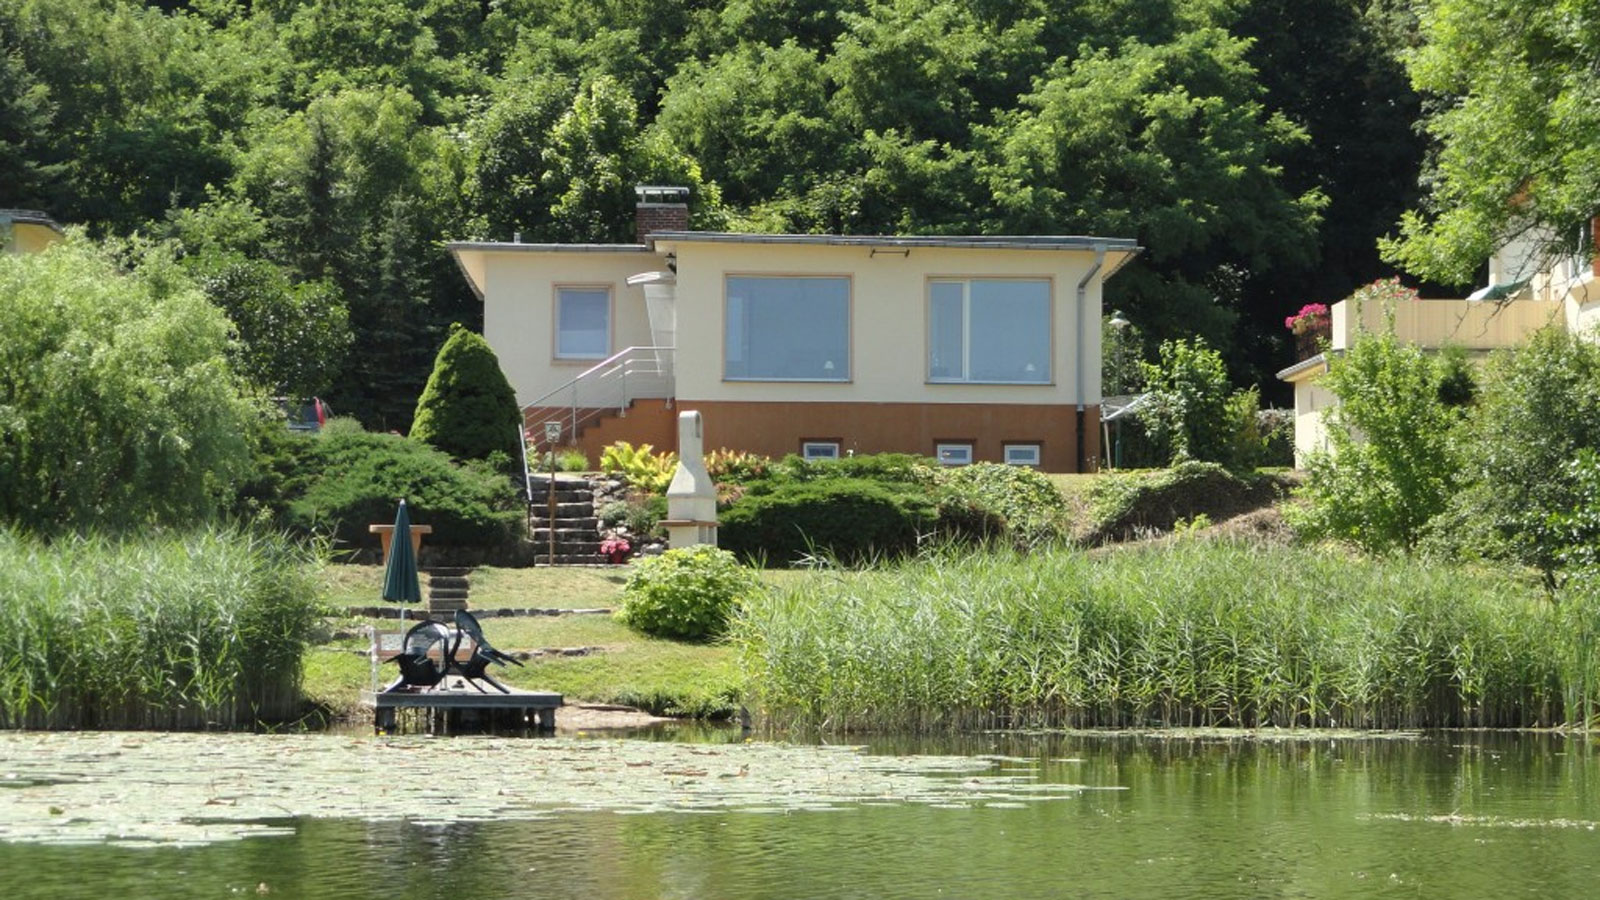 Haus am See Dambeck